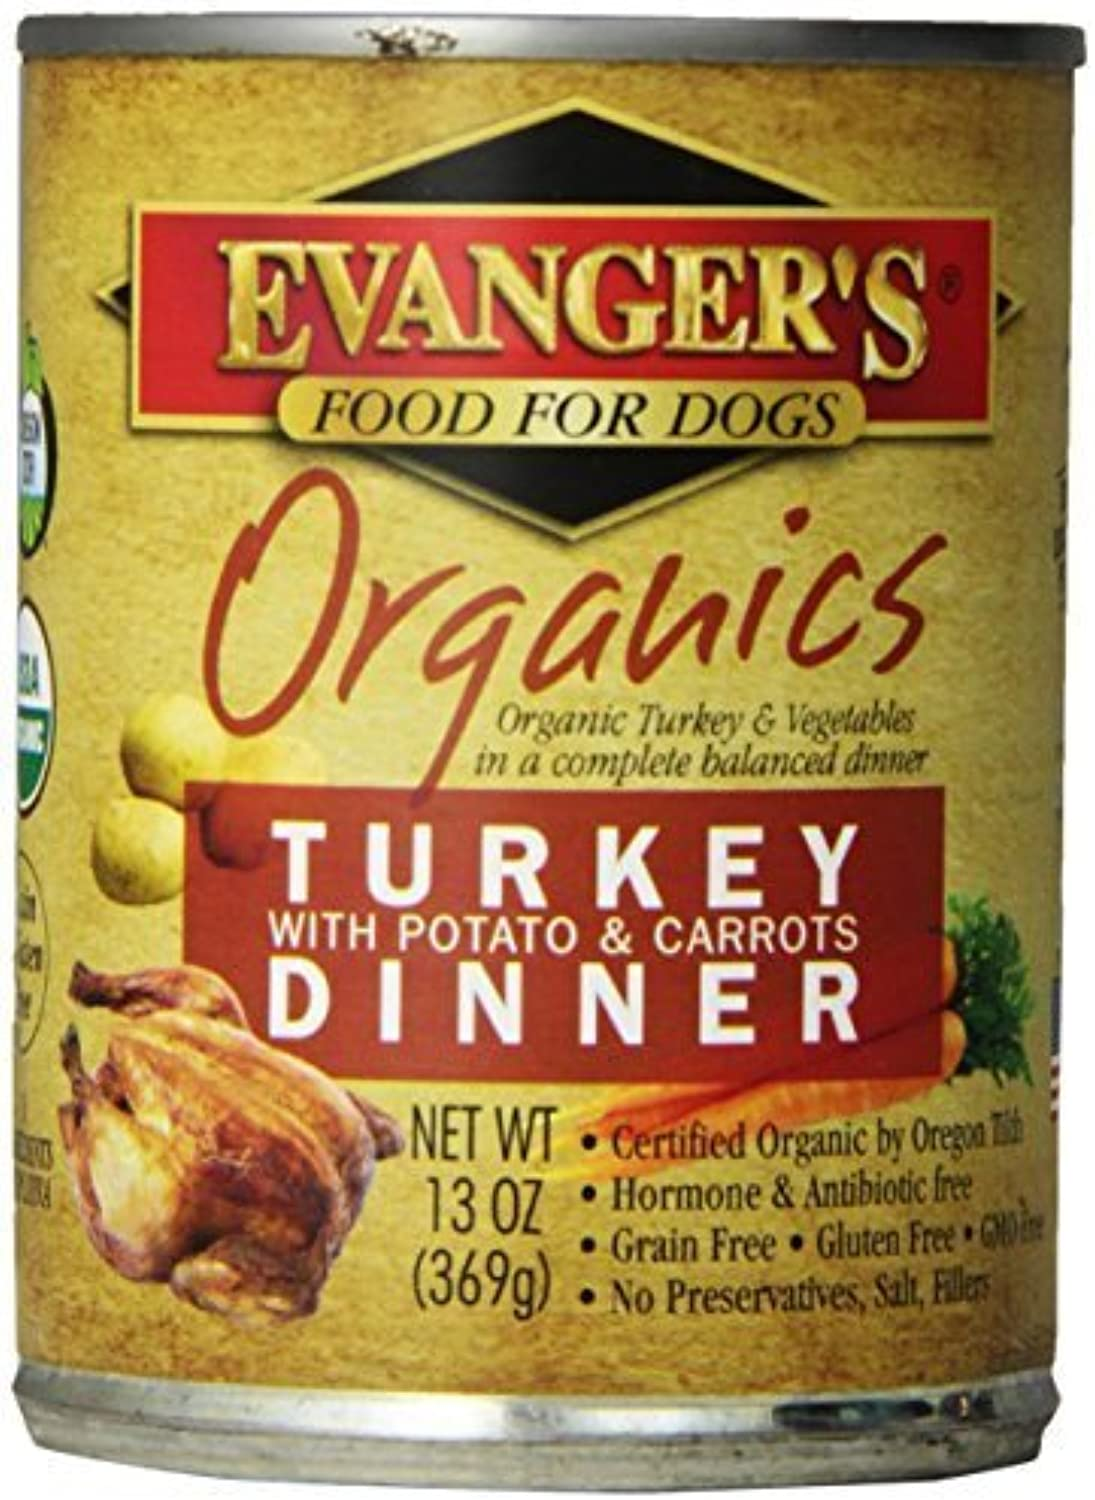 Evanger's Organics Turkey with Potato and Carred Dinner for dogs 13 oz,12 Pack by Phillips Feed & Pet Supply